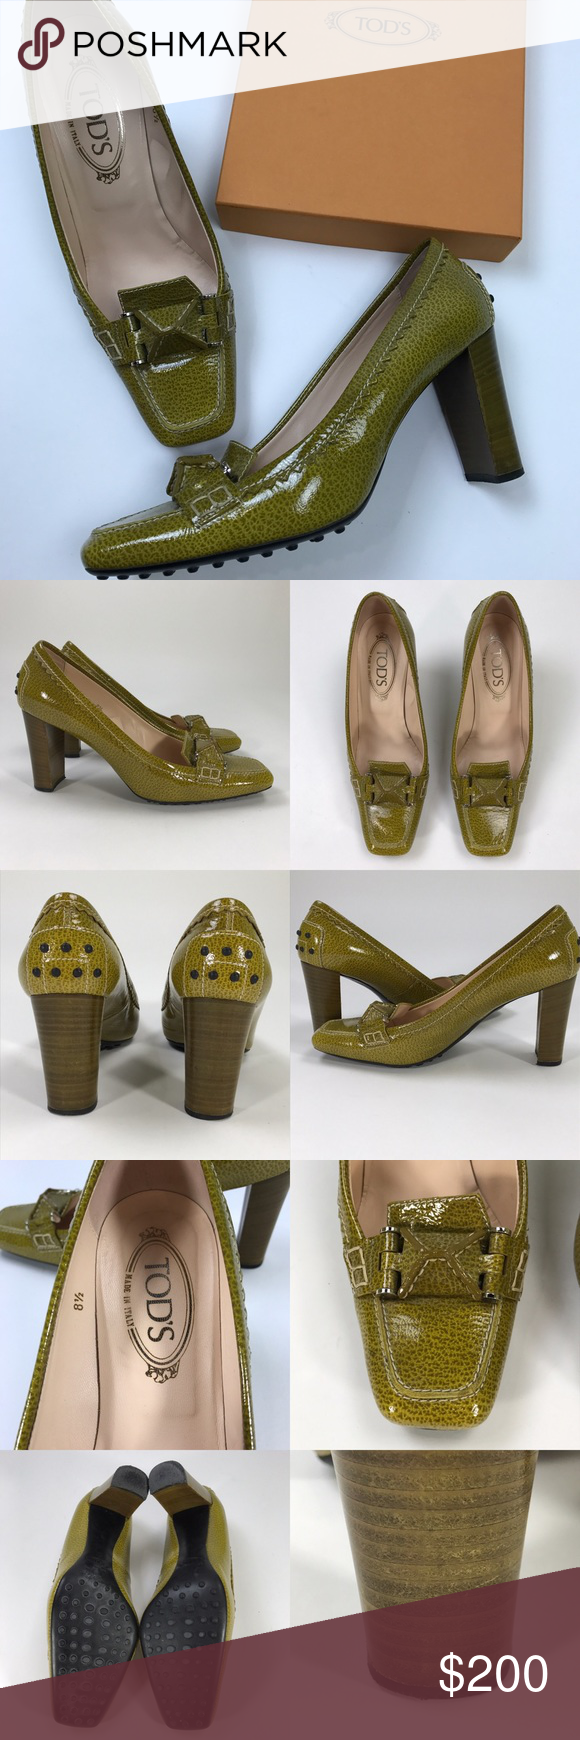 """[Tod's] Green Swing Selleria Pump Leather Heels Classic pair of Tod's pumps. Square toe moccasin style with block wood heel. Beautiful green patent leather.   🔹Heel Height: 3.25"""" 🔹Condition: Excellent pre-owned condition. A few small nicks/scratches on heels. No major flaws. Box and dust bag included. Tod's Shoes Heels"""